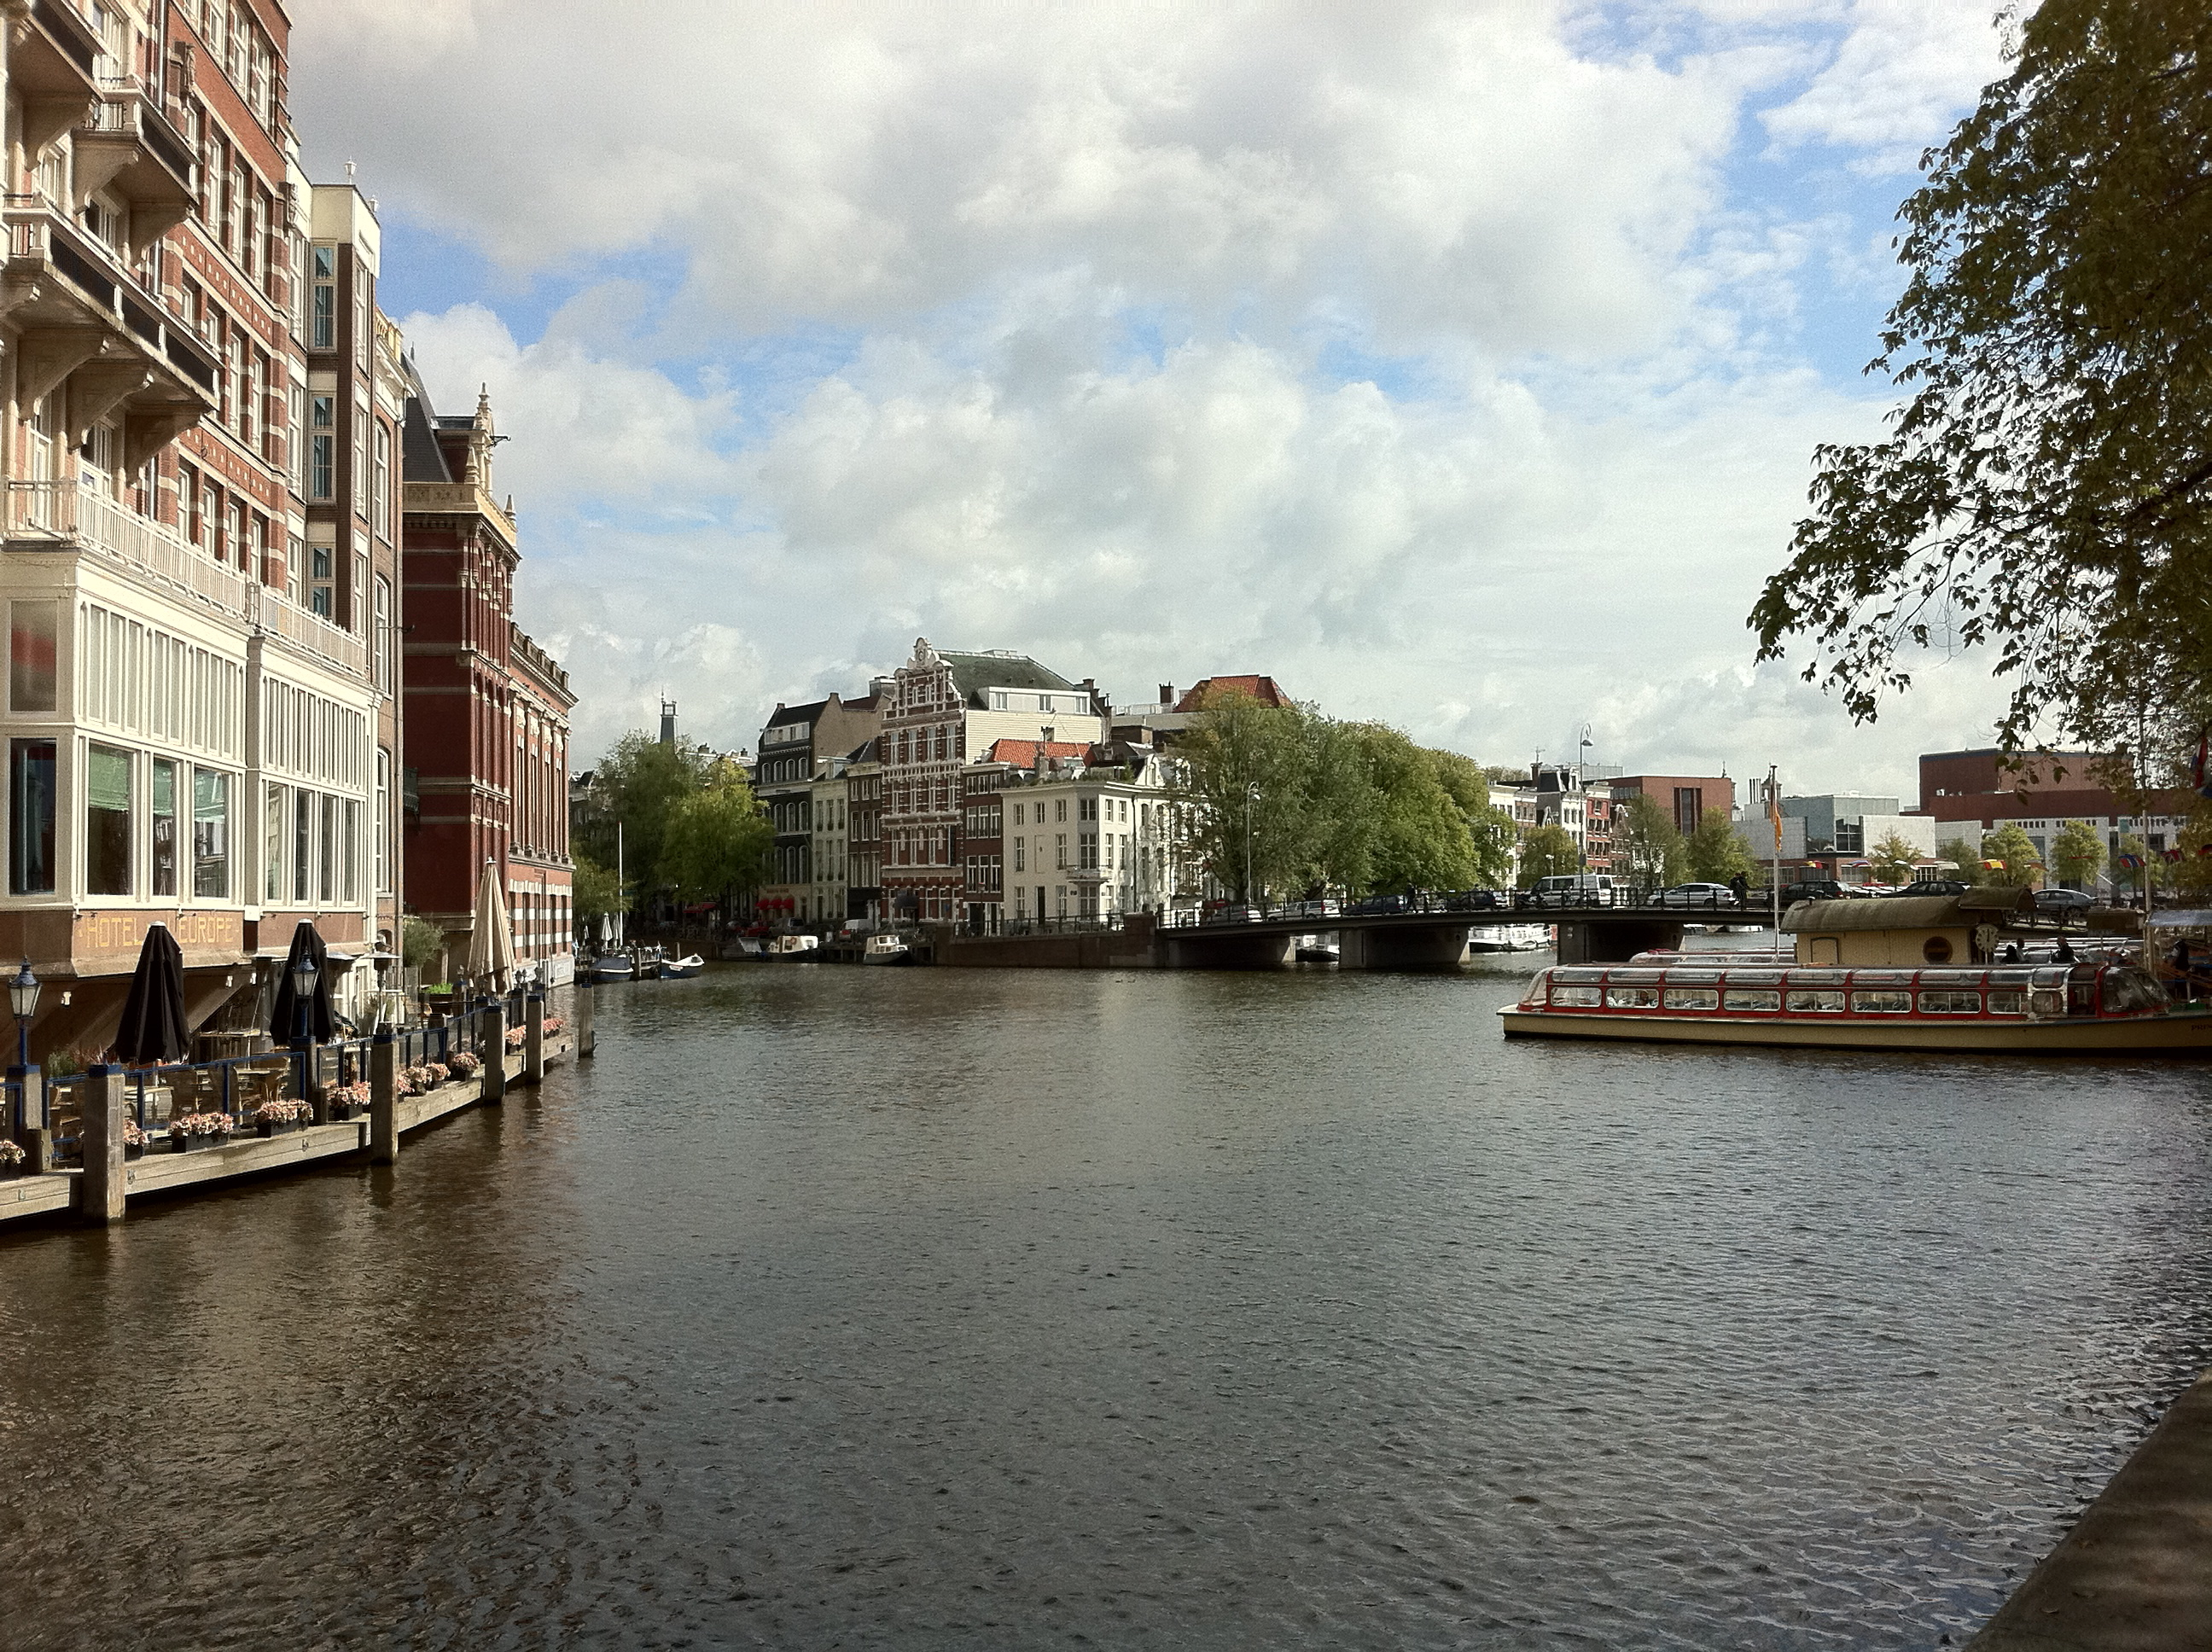 Amsterdam: One of the Best City Destinations in Europe